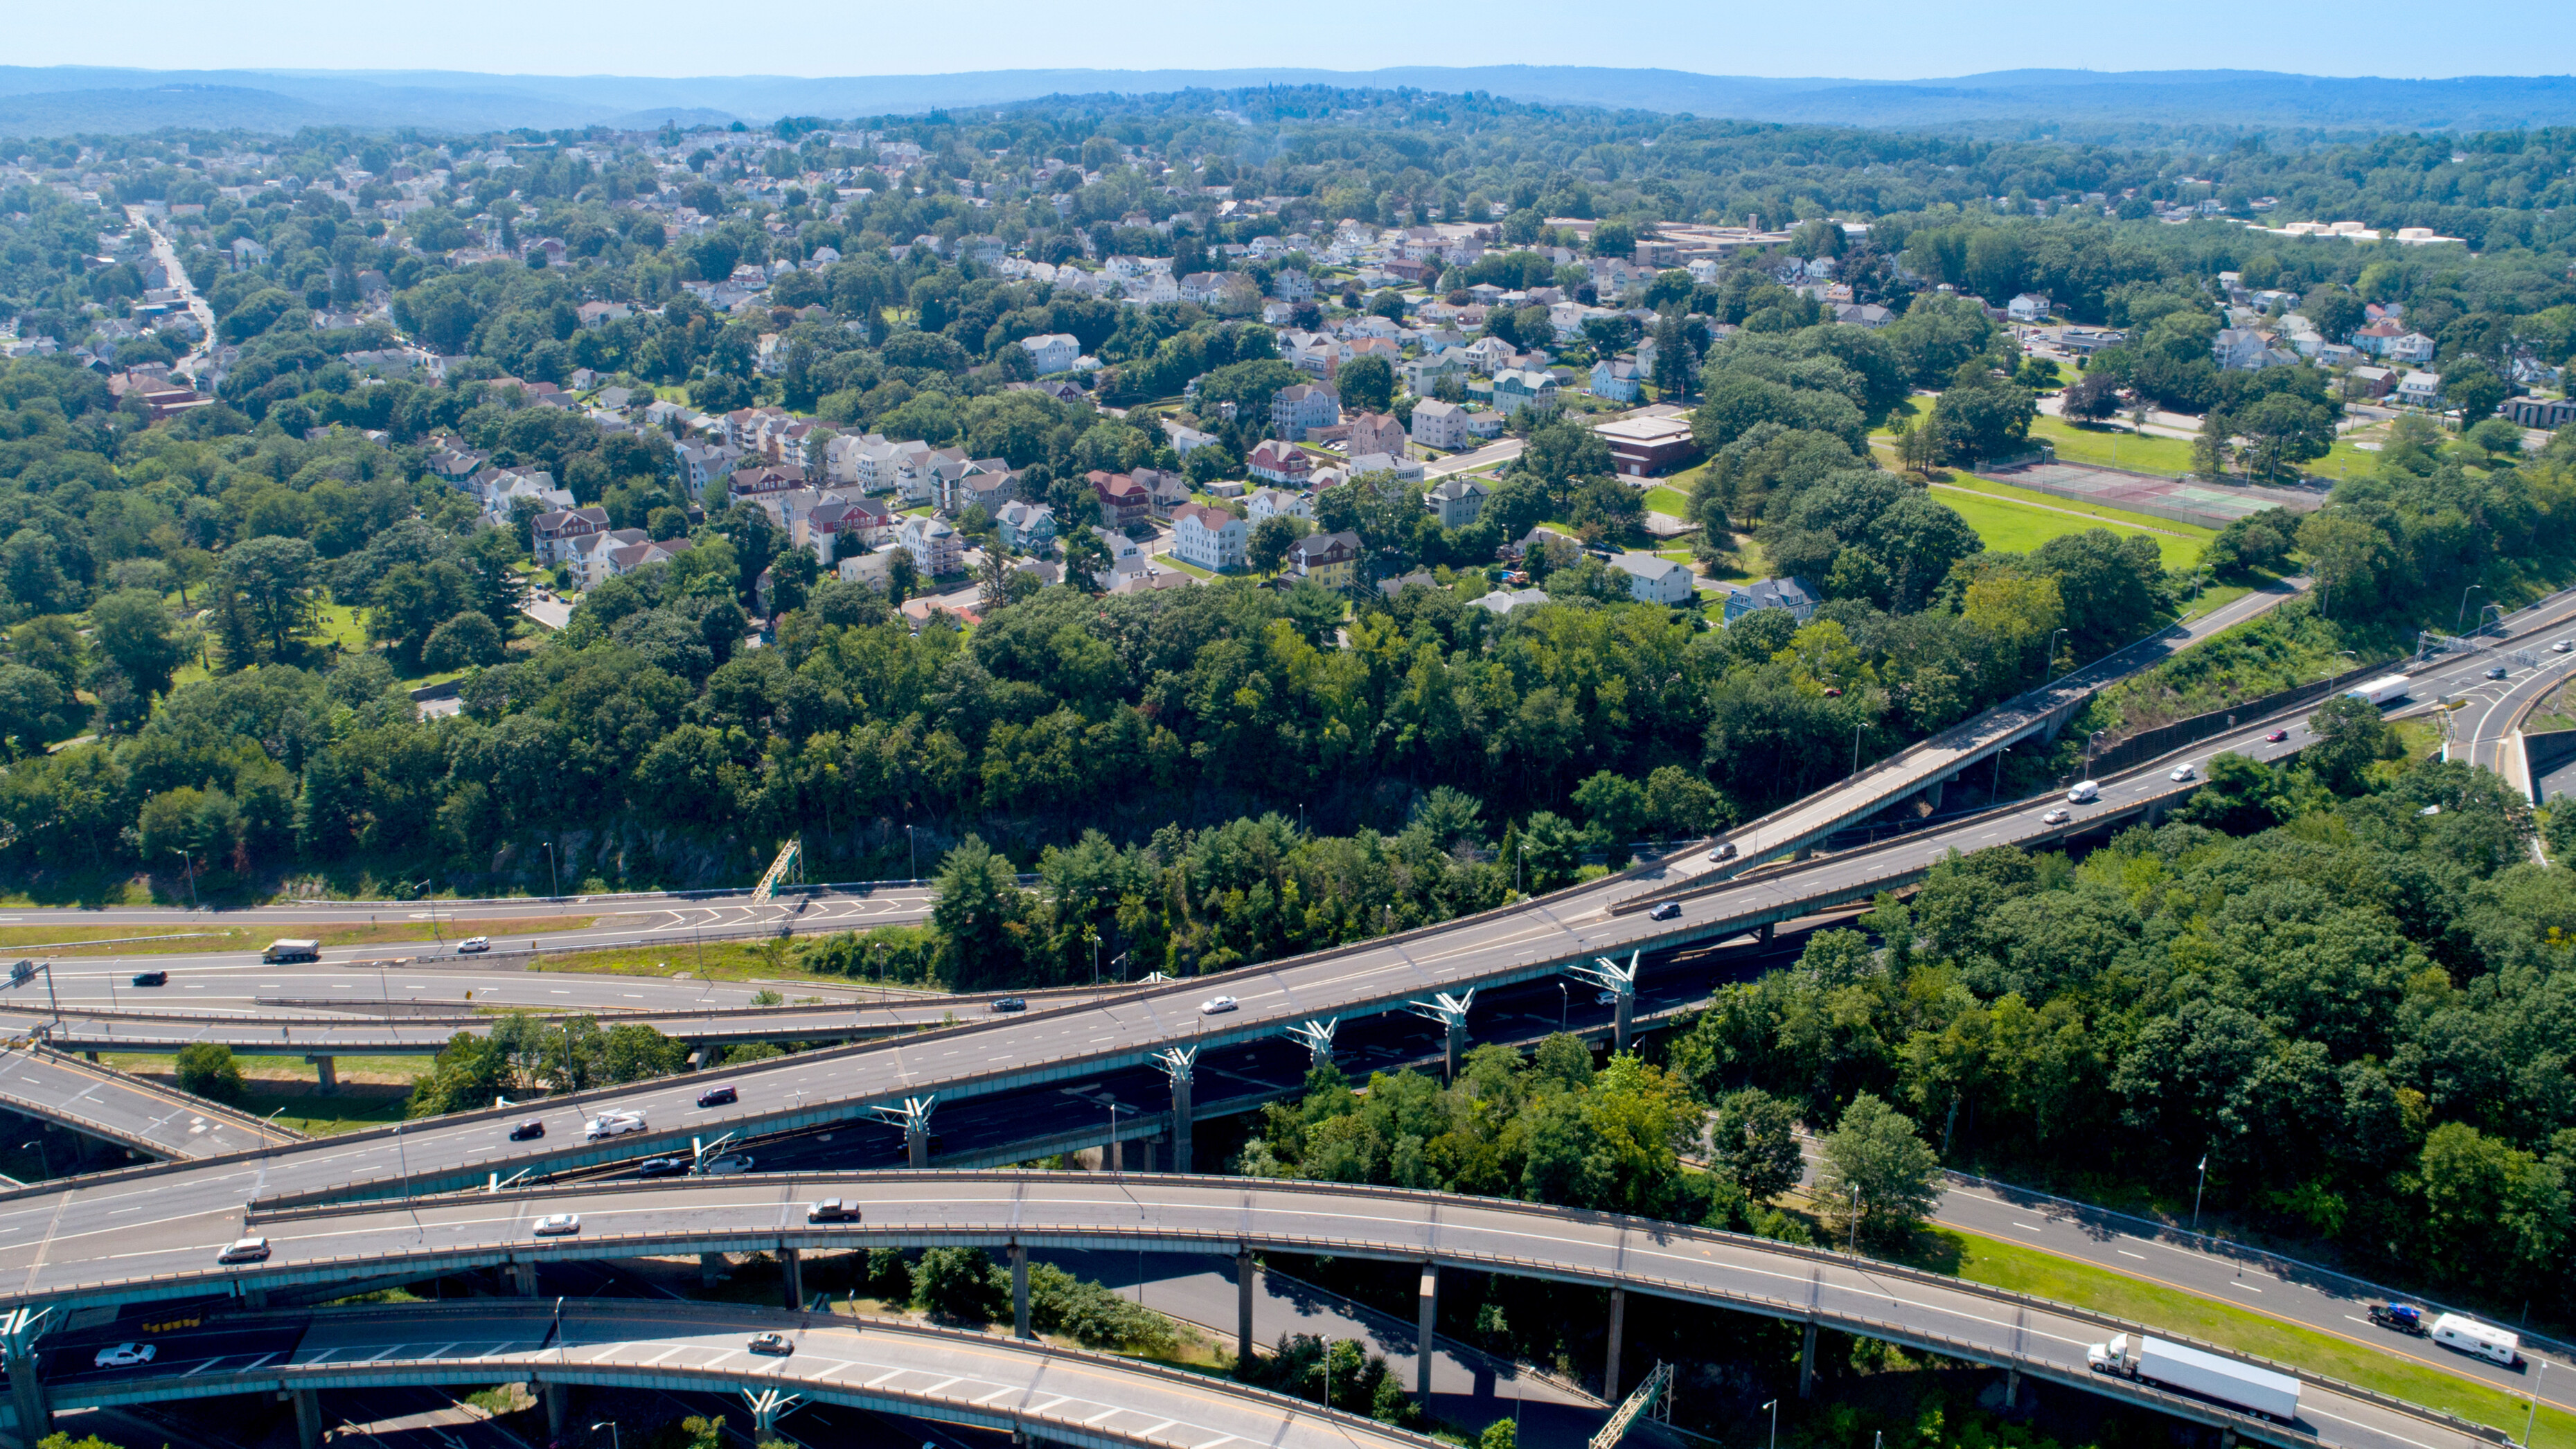 Aerial view of I-84 highway, Route 8 and the City of Waterbury.